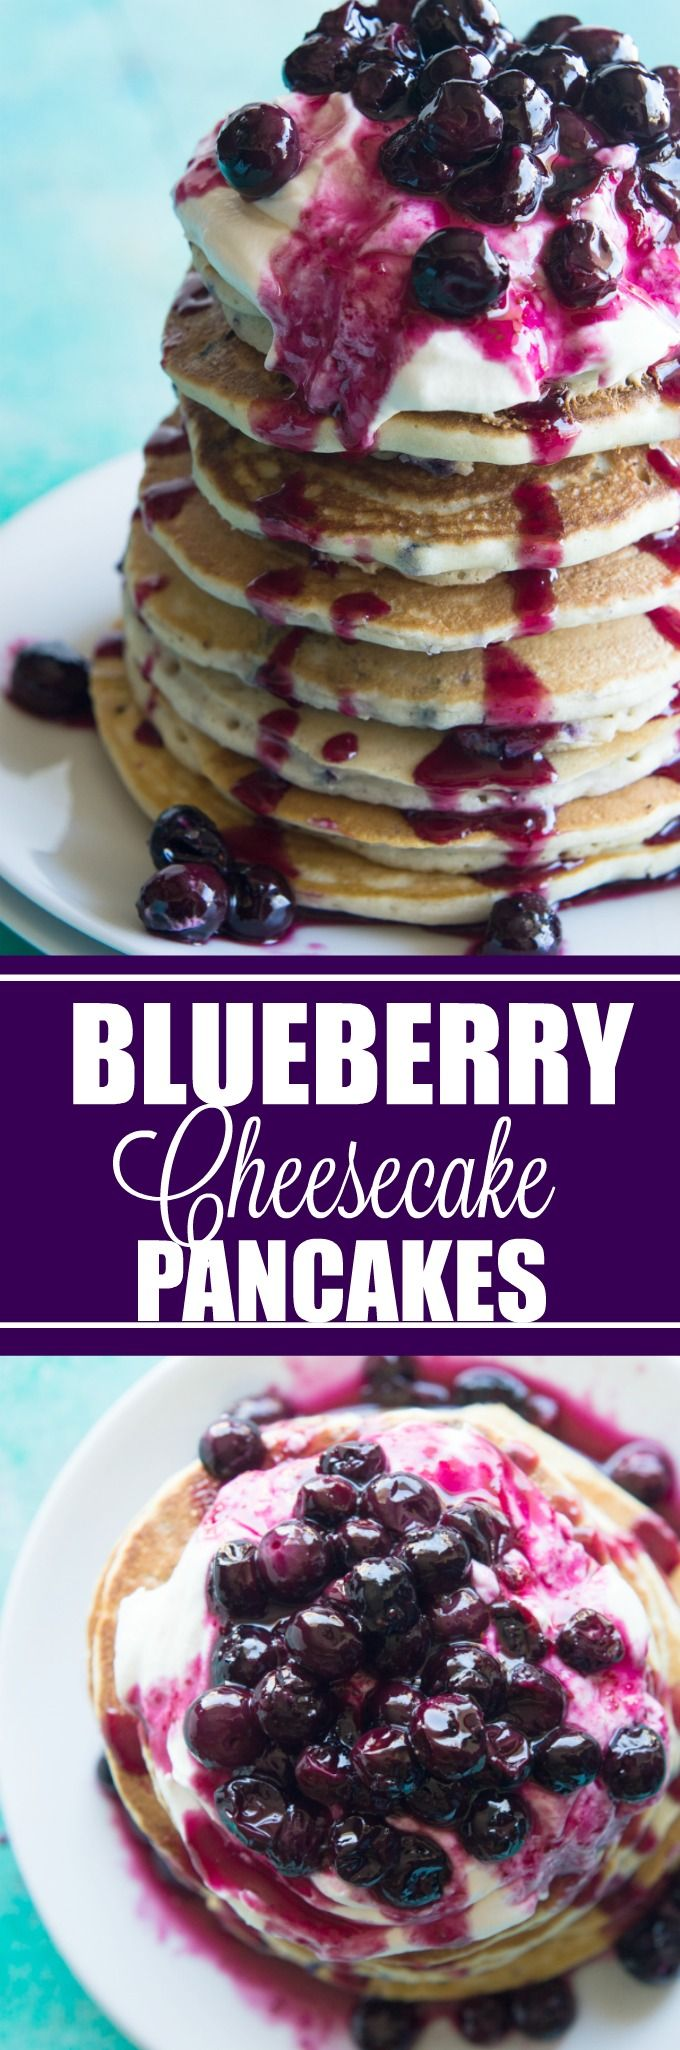 Blueberry Cheesecake Pancakes!  Soft pancakes bursting with juicy blueberries.  Topped with a fluffy cheesecake topping and a homemade blueberry sauce.  You will want to start everyday with this breakfast!  Life just doesn't get any better.